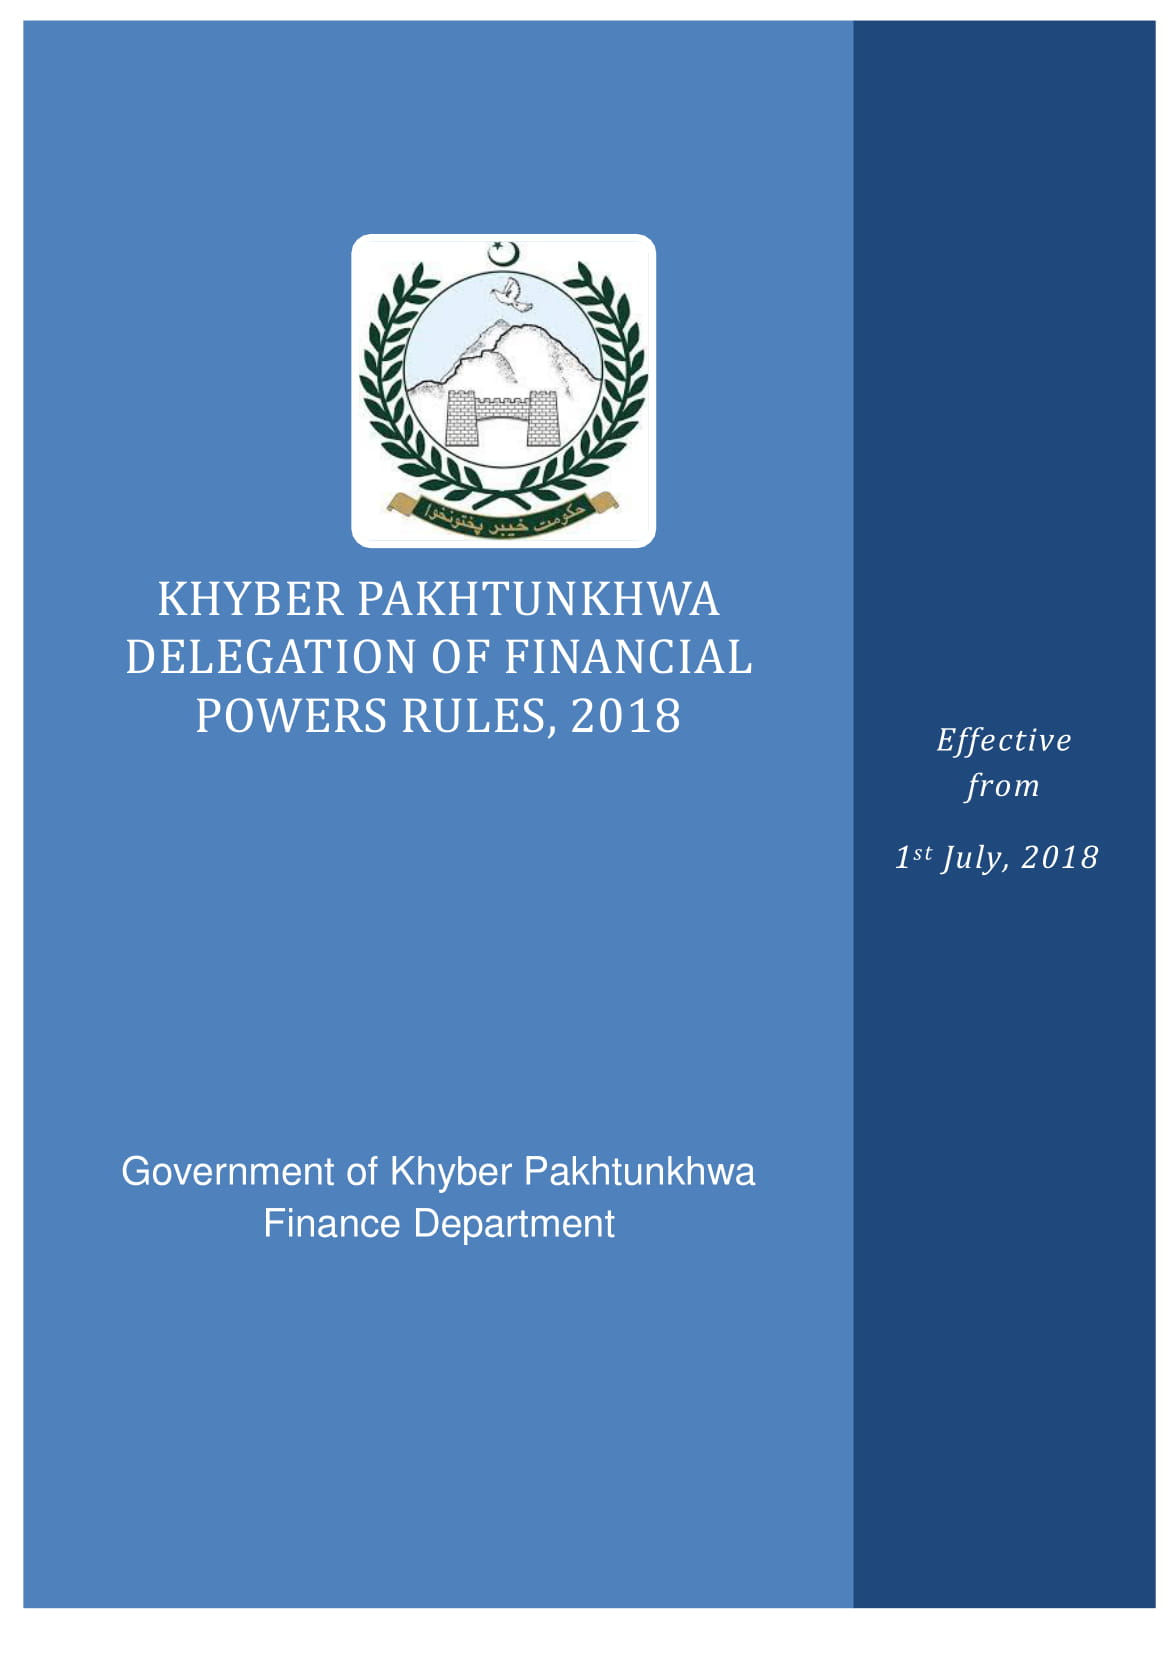 kp-delegation-of-financial-power-rules-2018-02